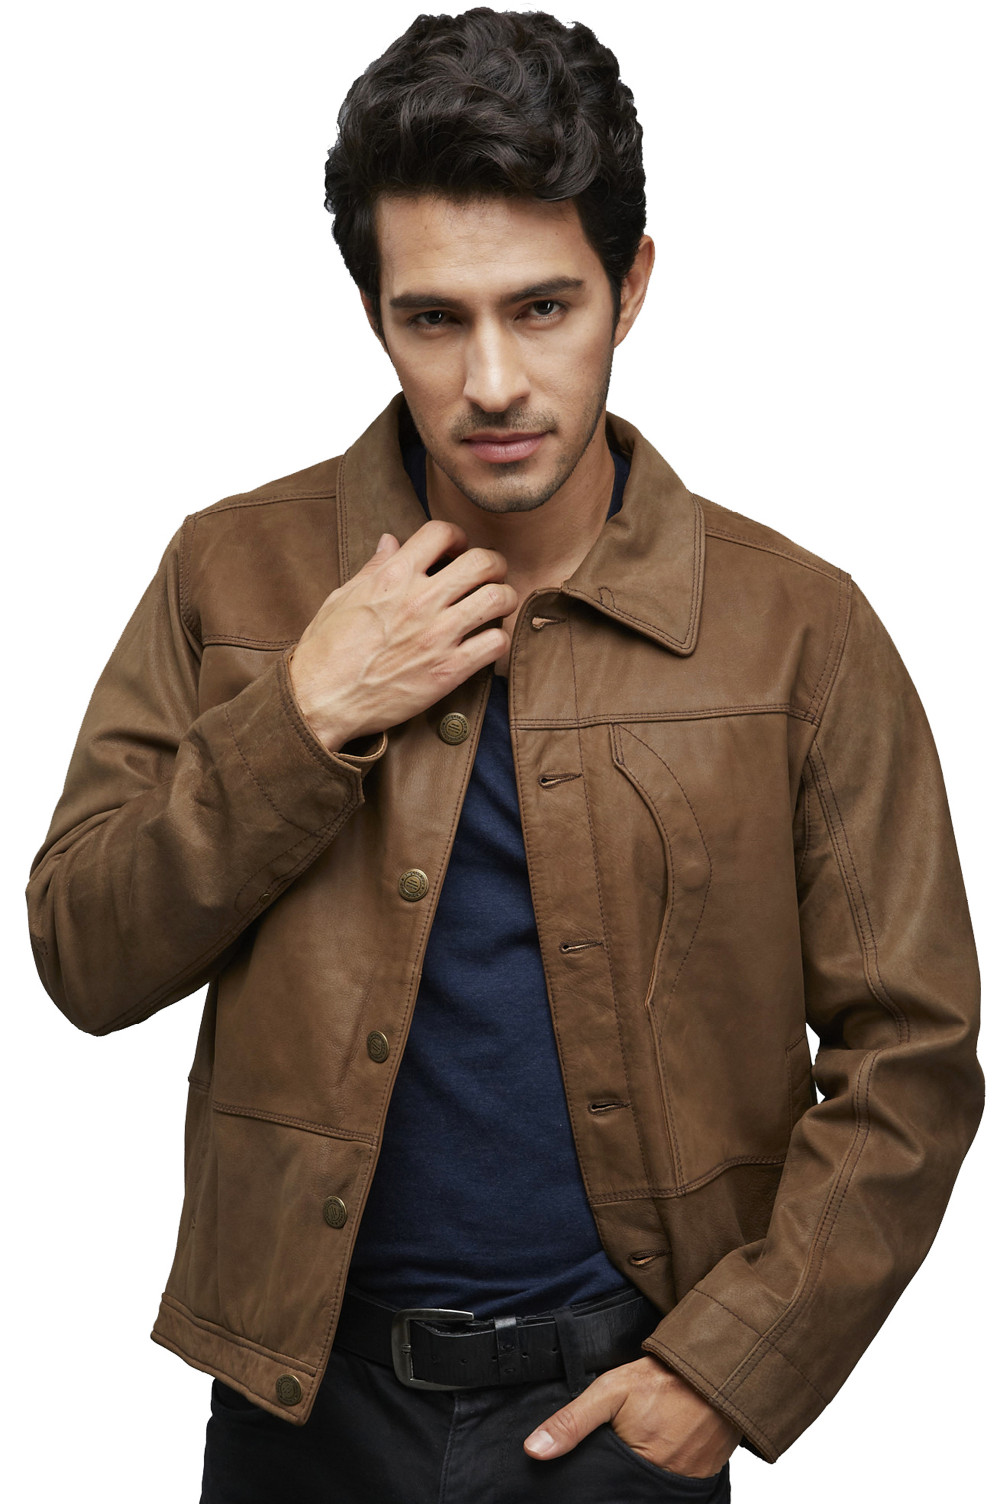 High End Vintage Style Suede Leather Jacket for Men